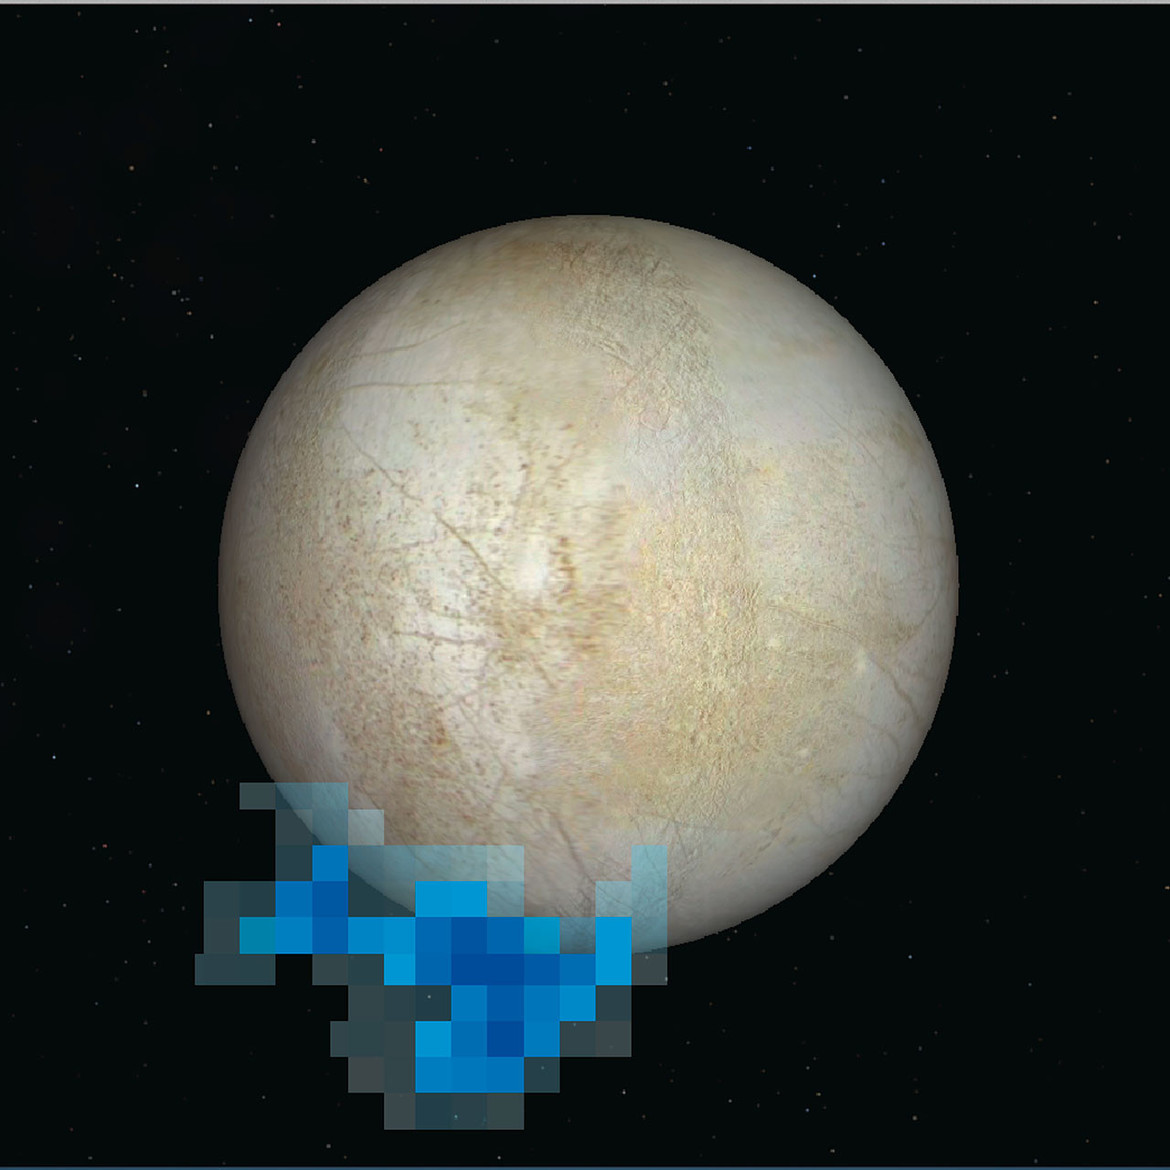 An image of Europa with the observations from Hubble superposed, showing where ultraviolet light was seen. Credit: NASA/ESA/L. Roth (Southwest Research Institute and University of Cologne, Germany)